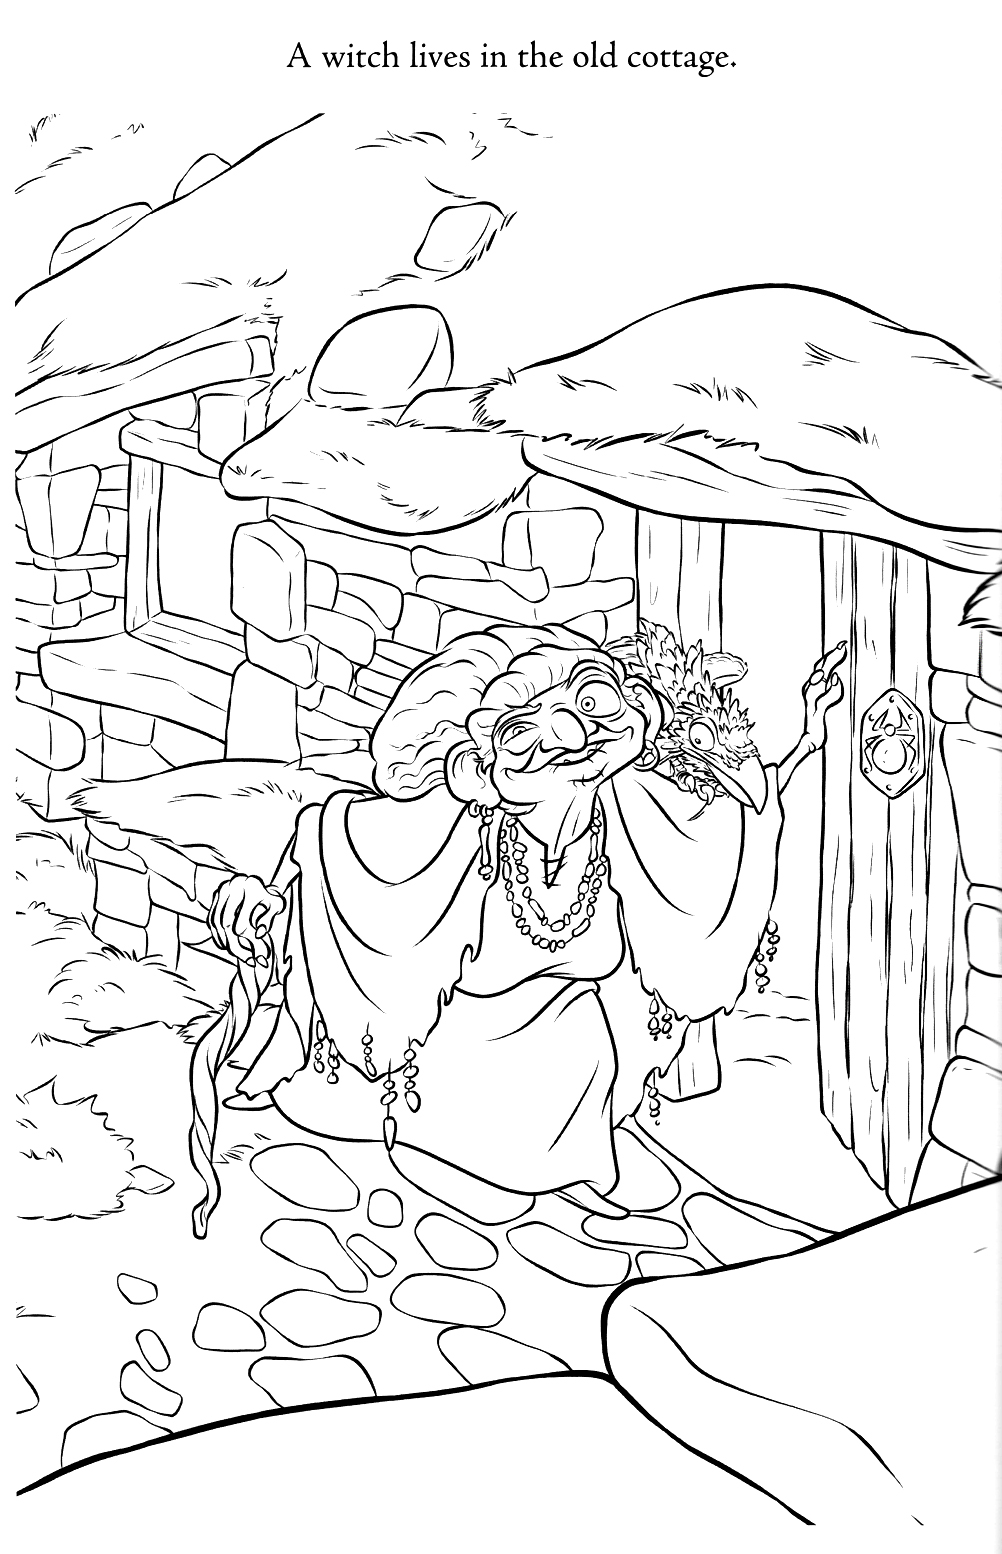 Brave coloring pages best coloring pages for kids for Coloring pages of witches